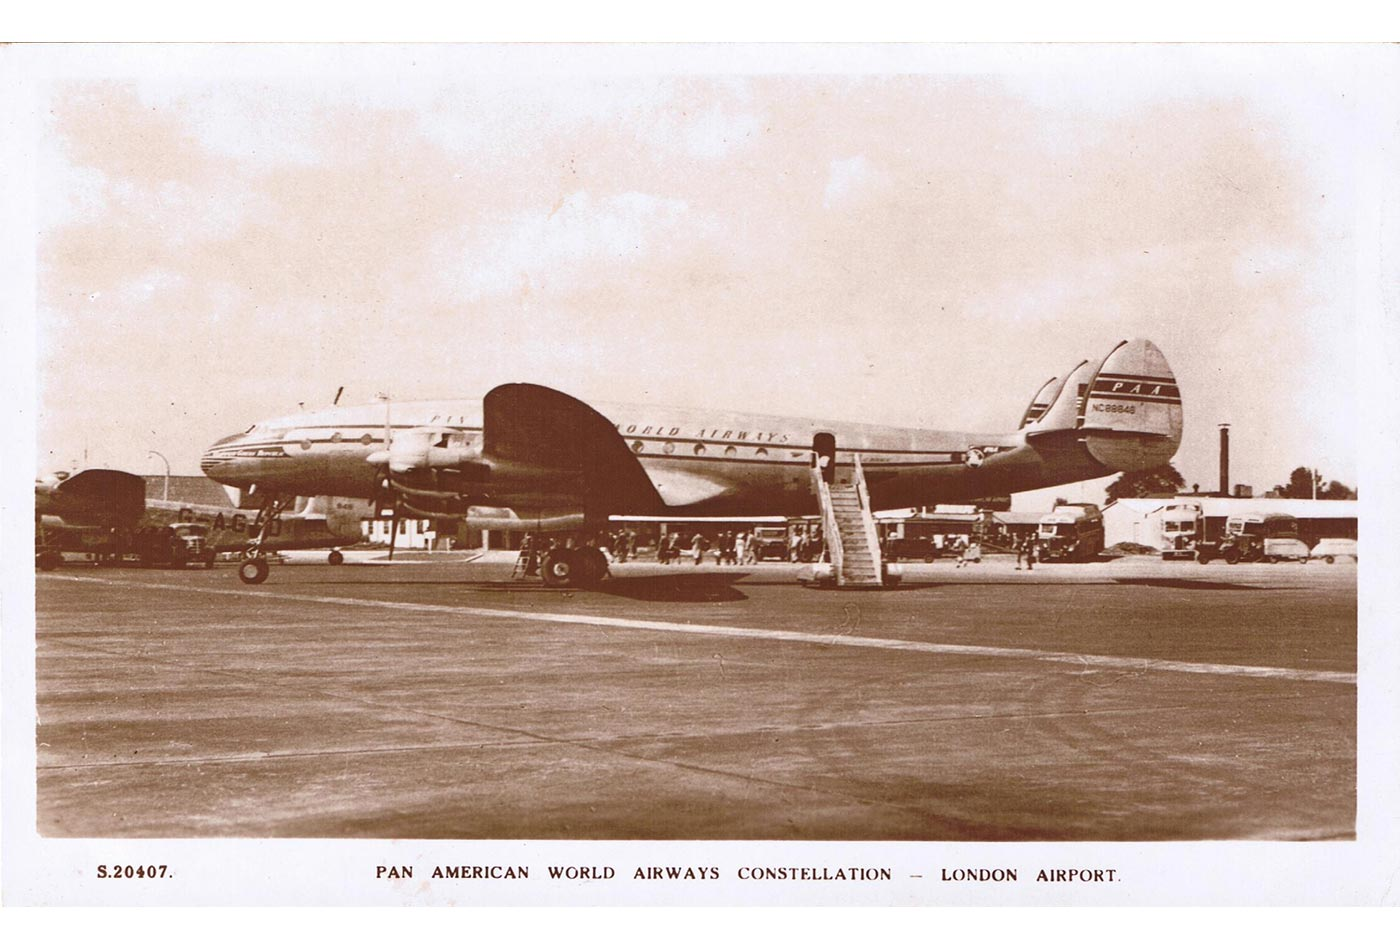 Pan Am L-049 Constellation at London